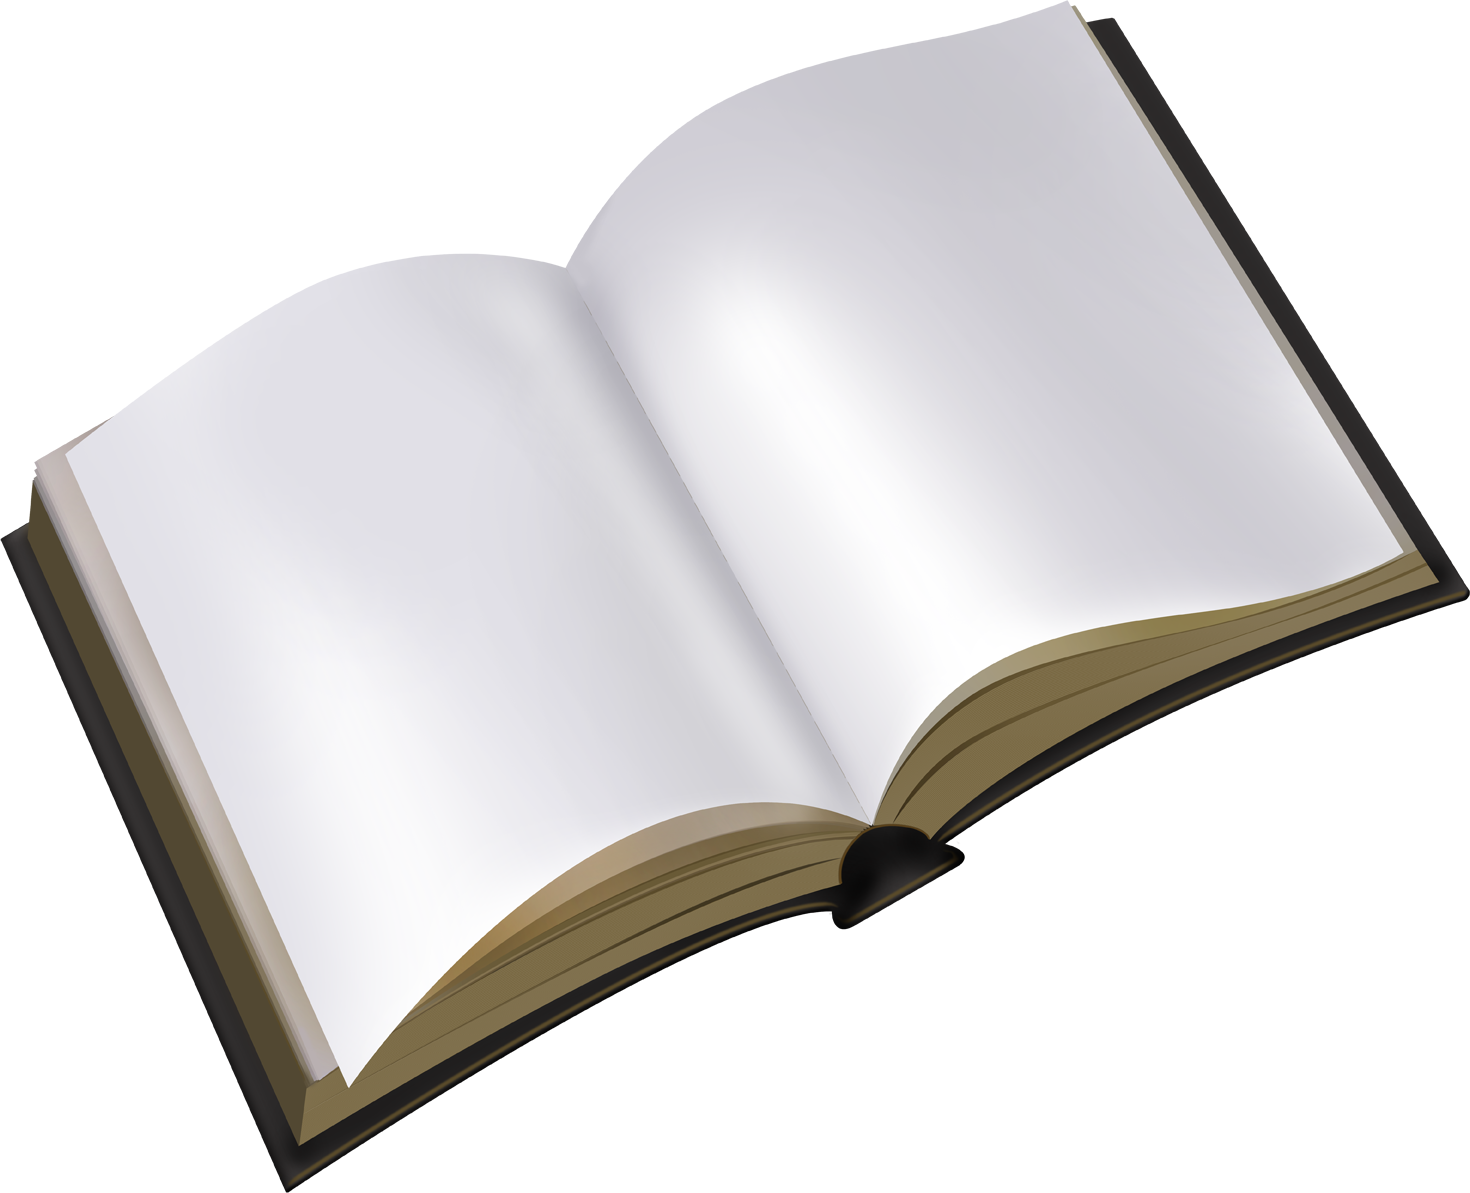 Open Book Png Image Open Book Png Images Blank Book